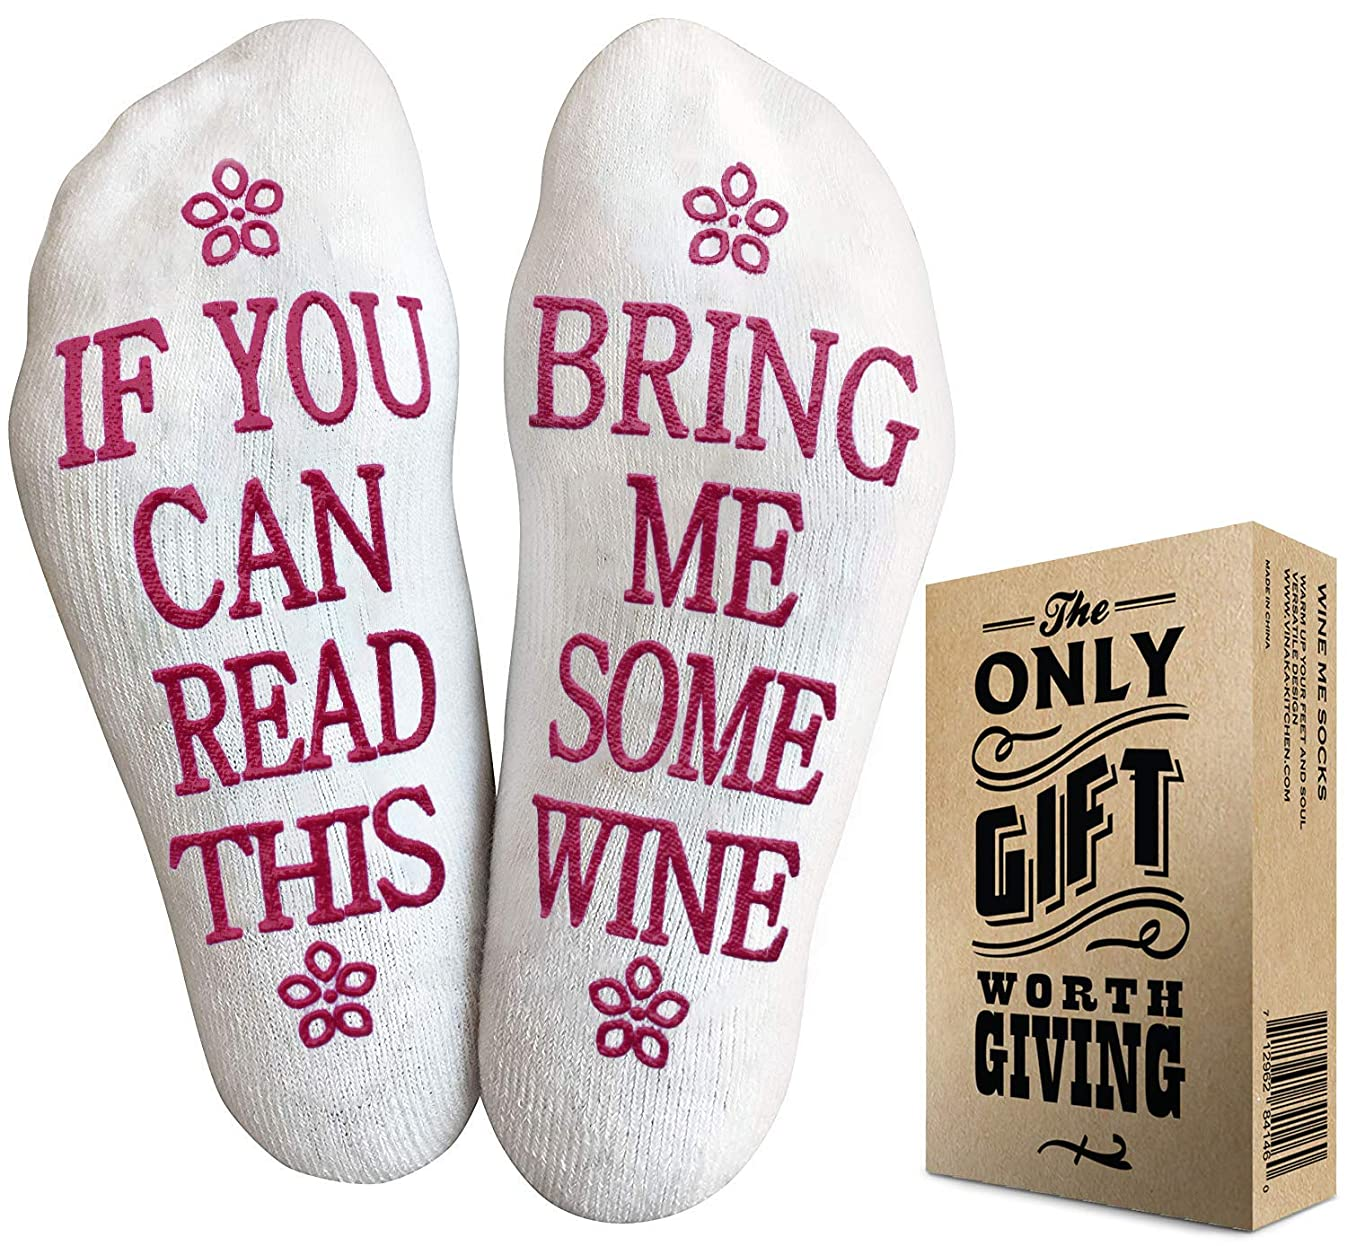 Wine Socks with Gift Packaging: If You Can Read This Socks Bring Me Some Wine Phrase - Funny Accessory for Her, Present for Wife, Gifts for Women Under 10 Dollars, Great Birthday gift for her